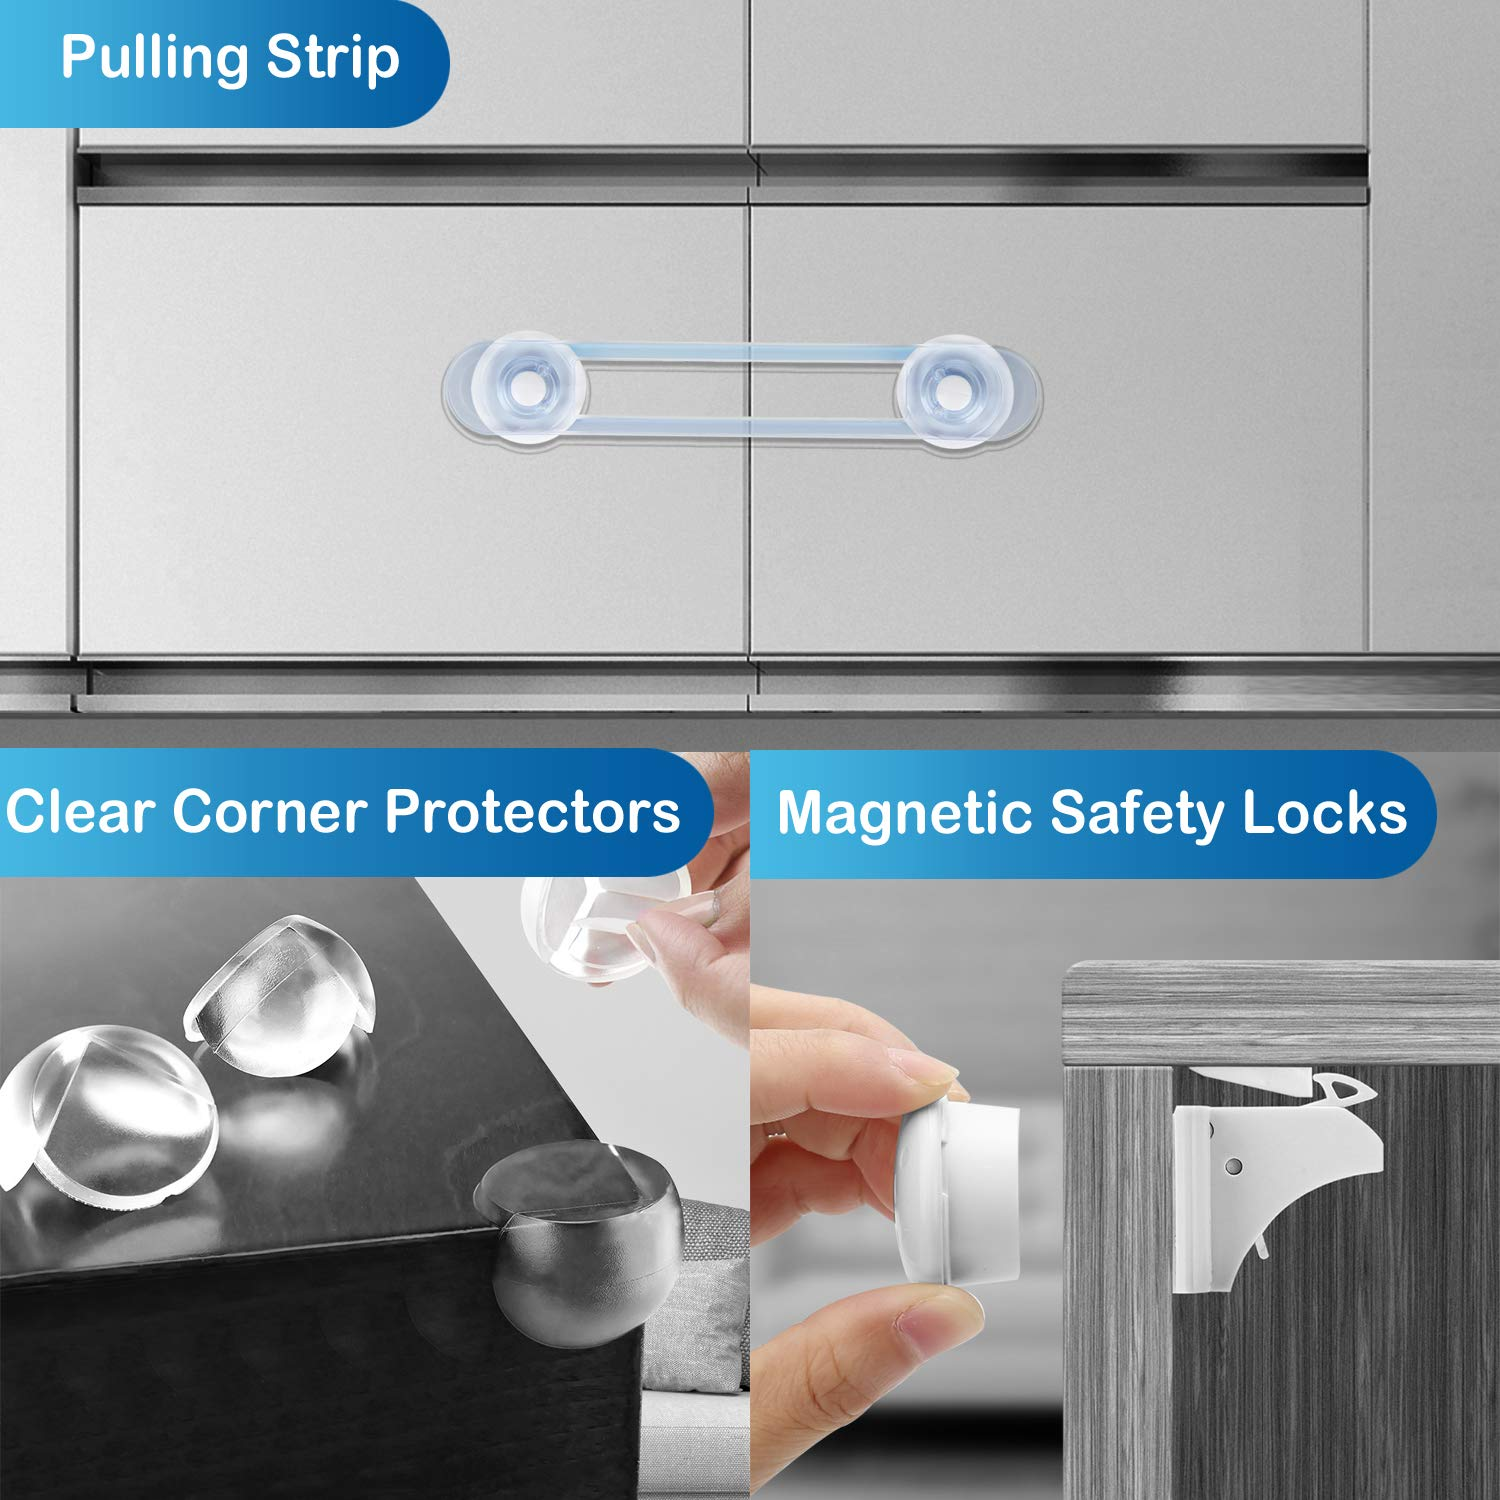 32 Pcs Child Safety Cupboard Locks 6 Baby Safety Cupboard Straps 8 Cupboard Locks+2 Keys Baby Proofing Kit 16 Corner Protectors No Drill Required- Best Baby Safety Set